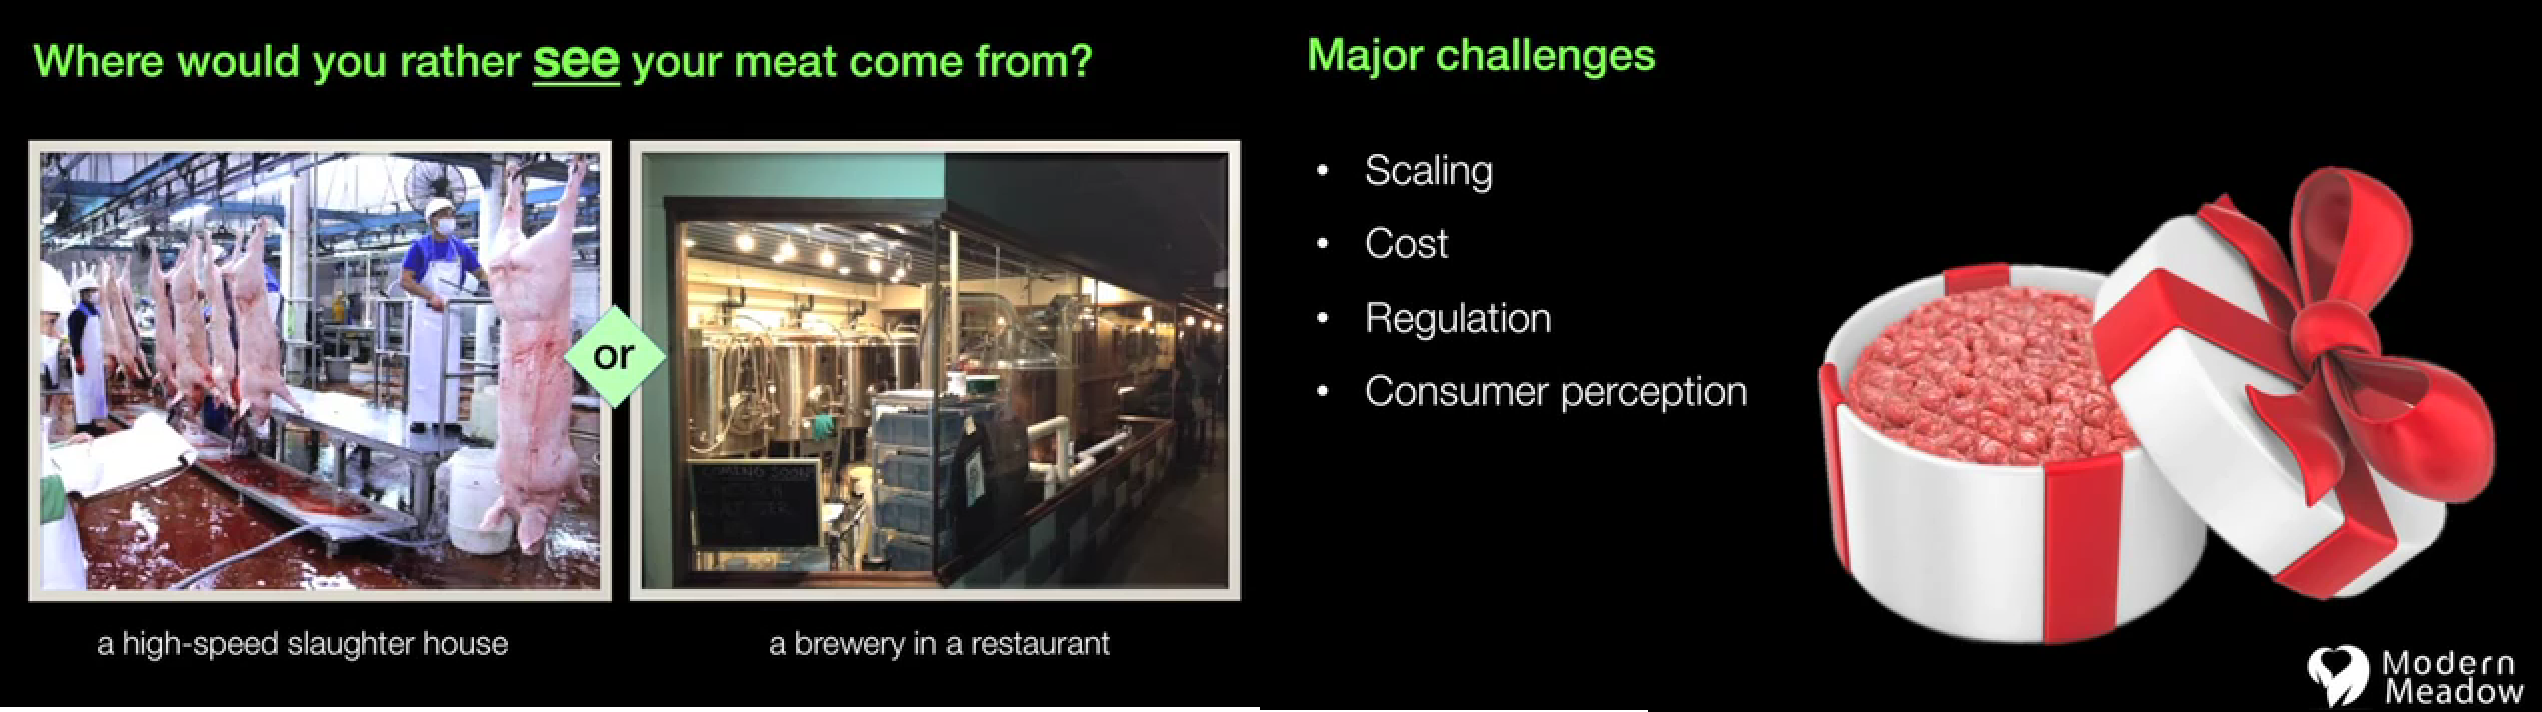 Slides prepared by startup Modern Meadow pitch 3D-printed meat as a more environmentally friendly approach to dinner.